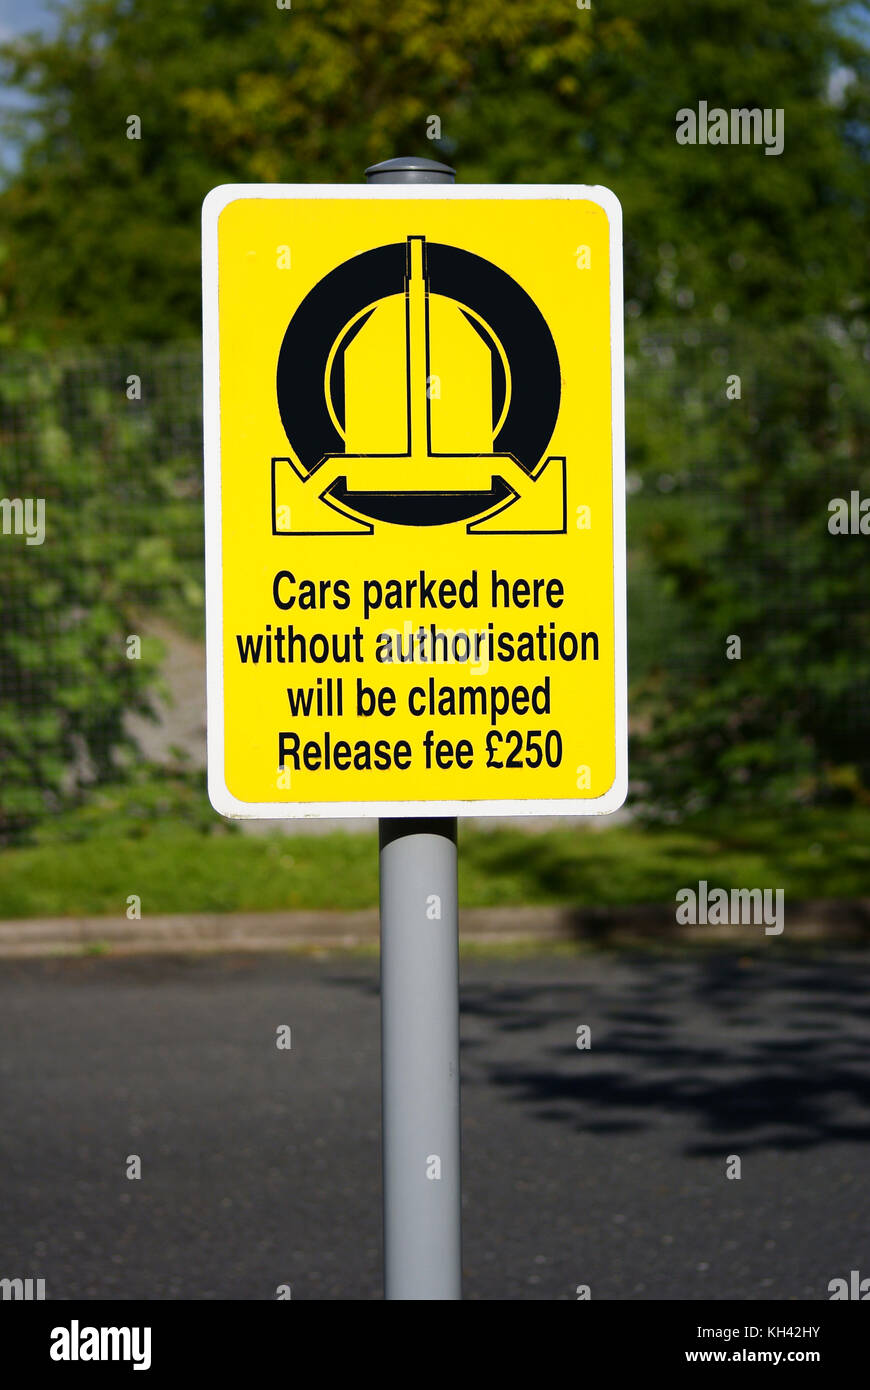 Wheel clamping sign showing a release penalty of £250 in the UK - Stock Image